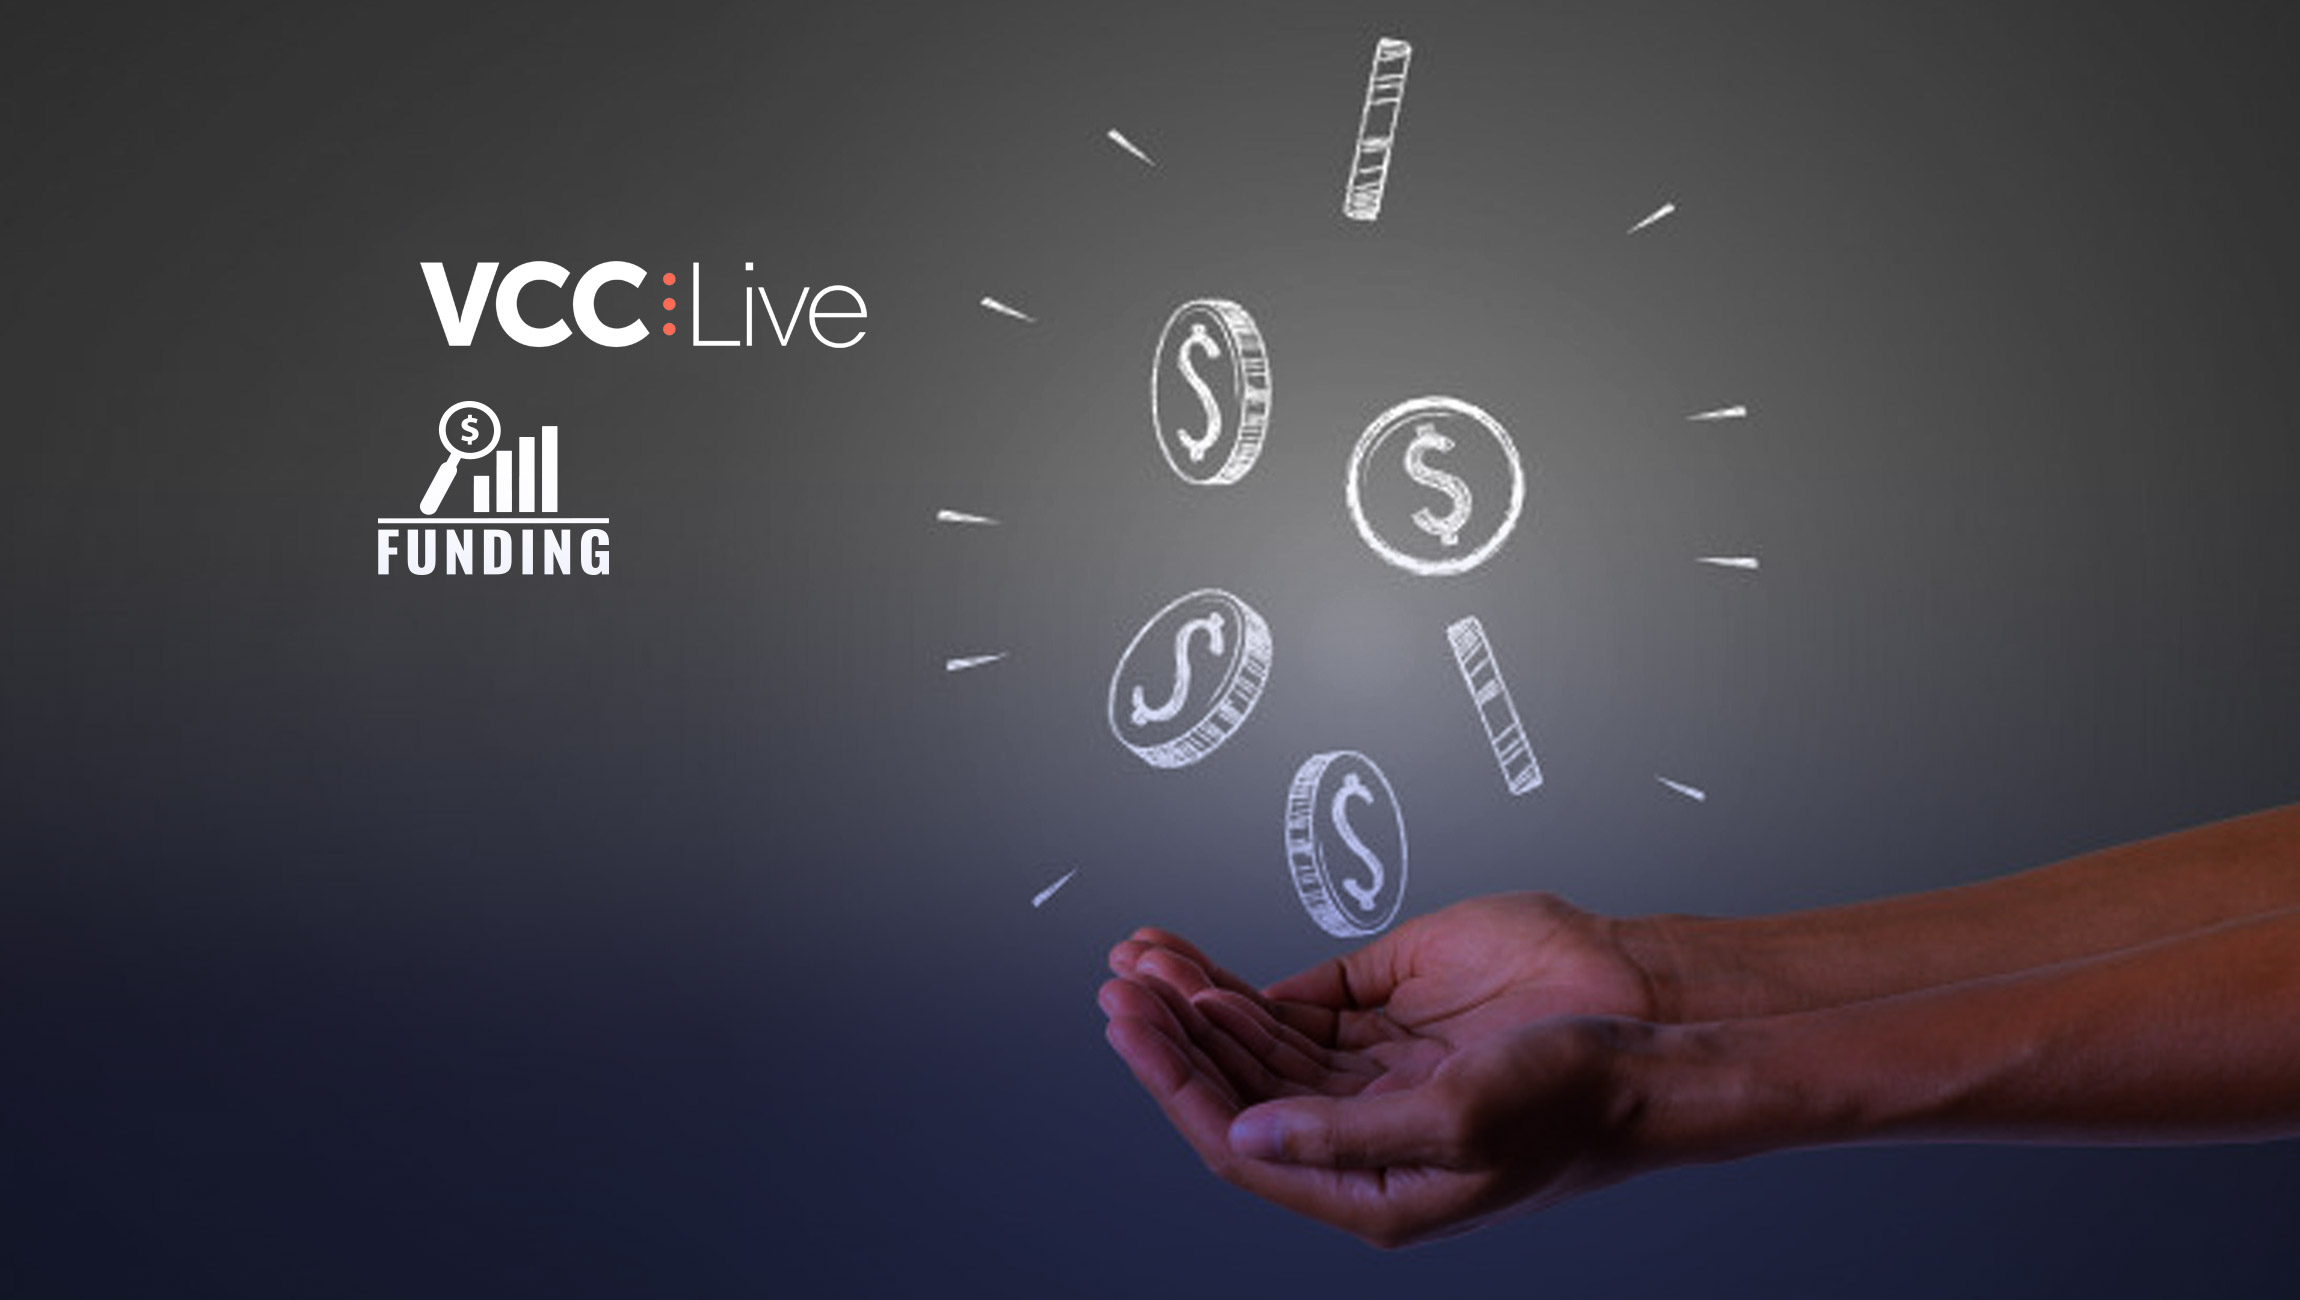 VCC Live Announces $2.4M in Series A Funding from PortfoLion